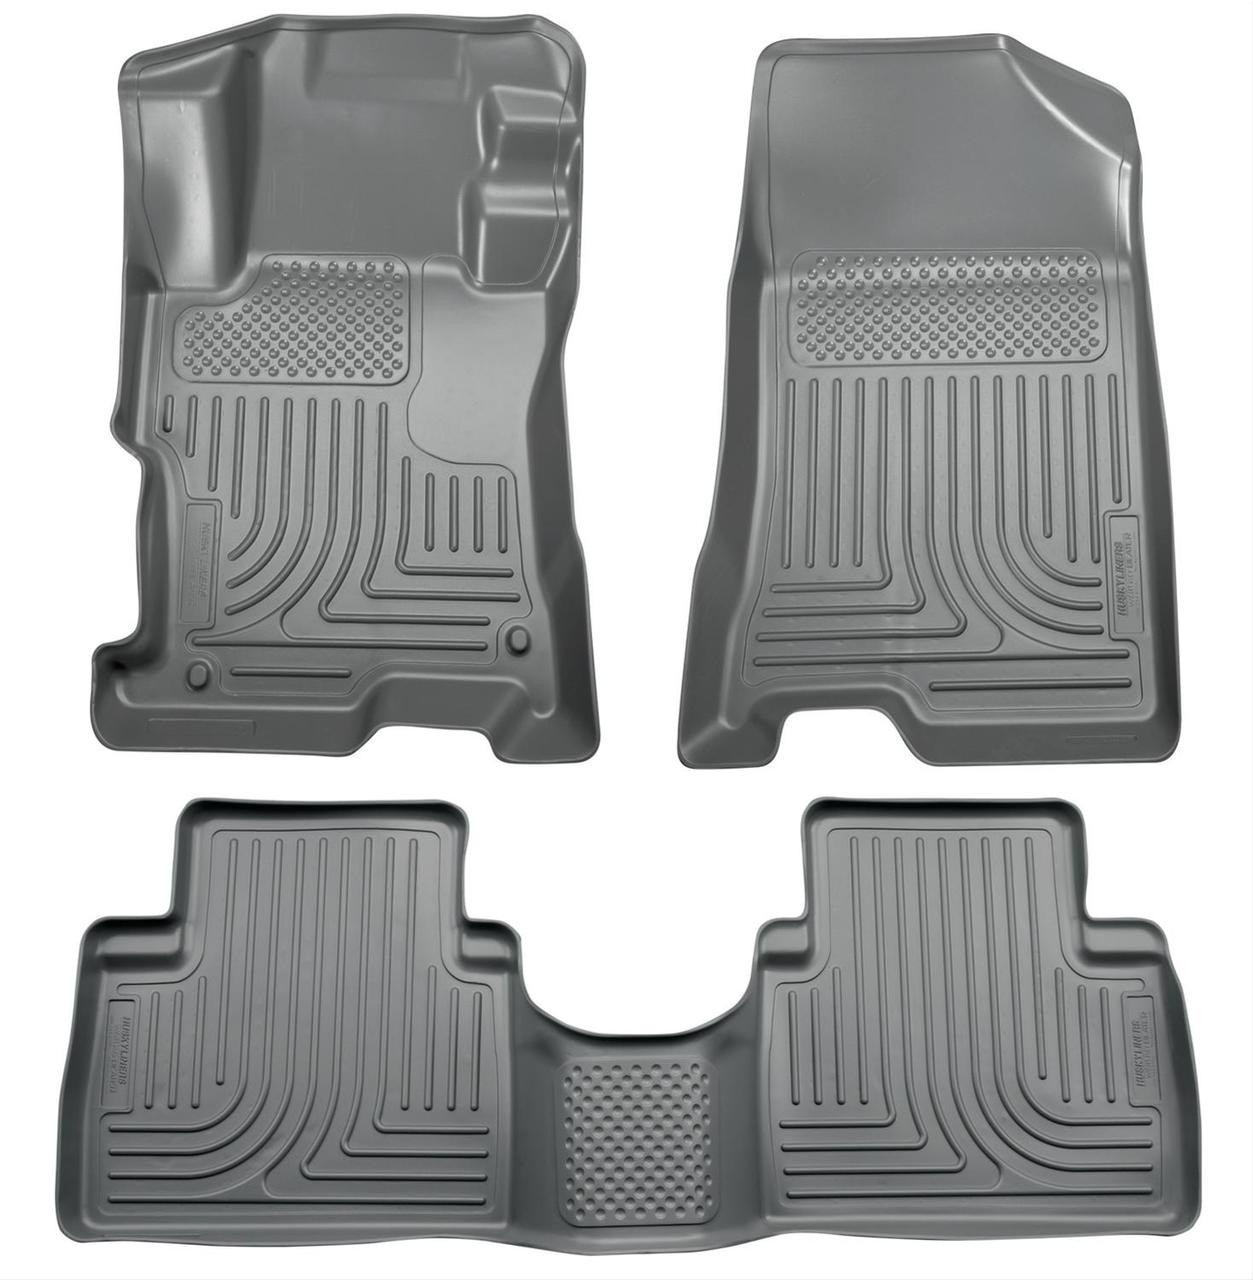 08-12 ACCORD 4-DOOR FRONT AND SECOND SEAT LINER GREY